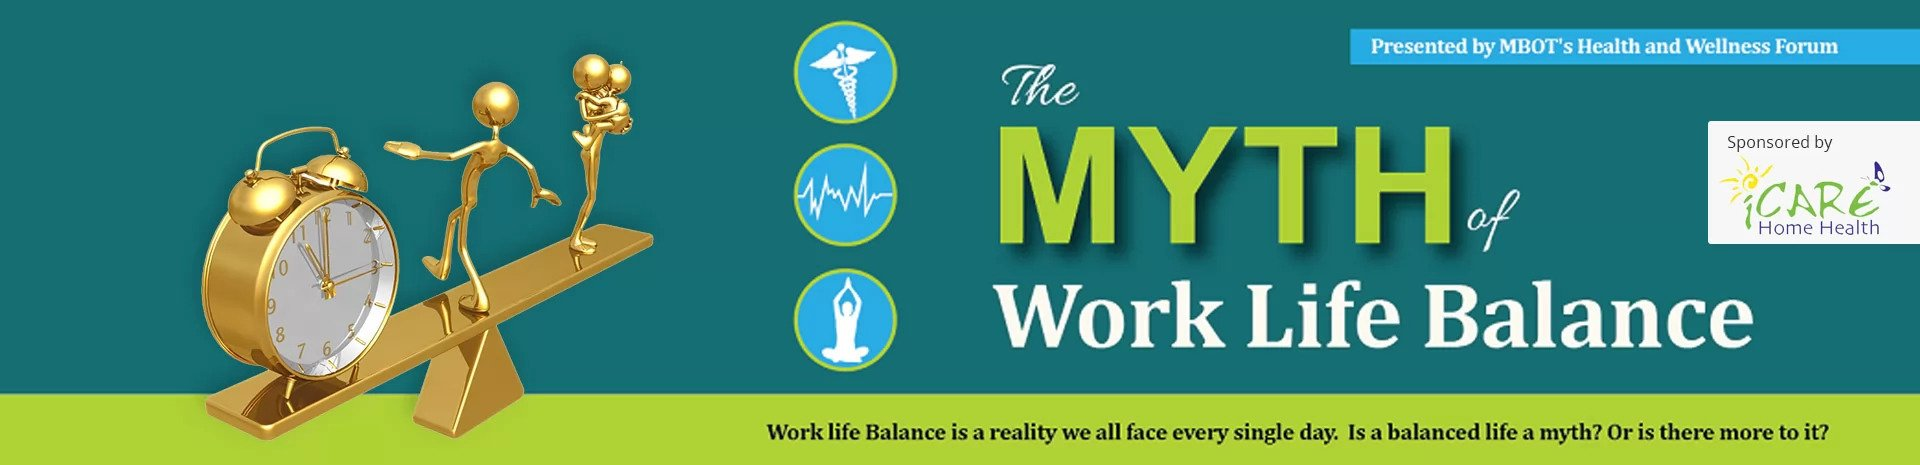 Myth of Work Life Balance